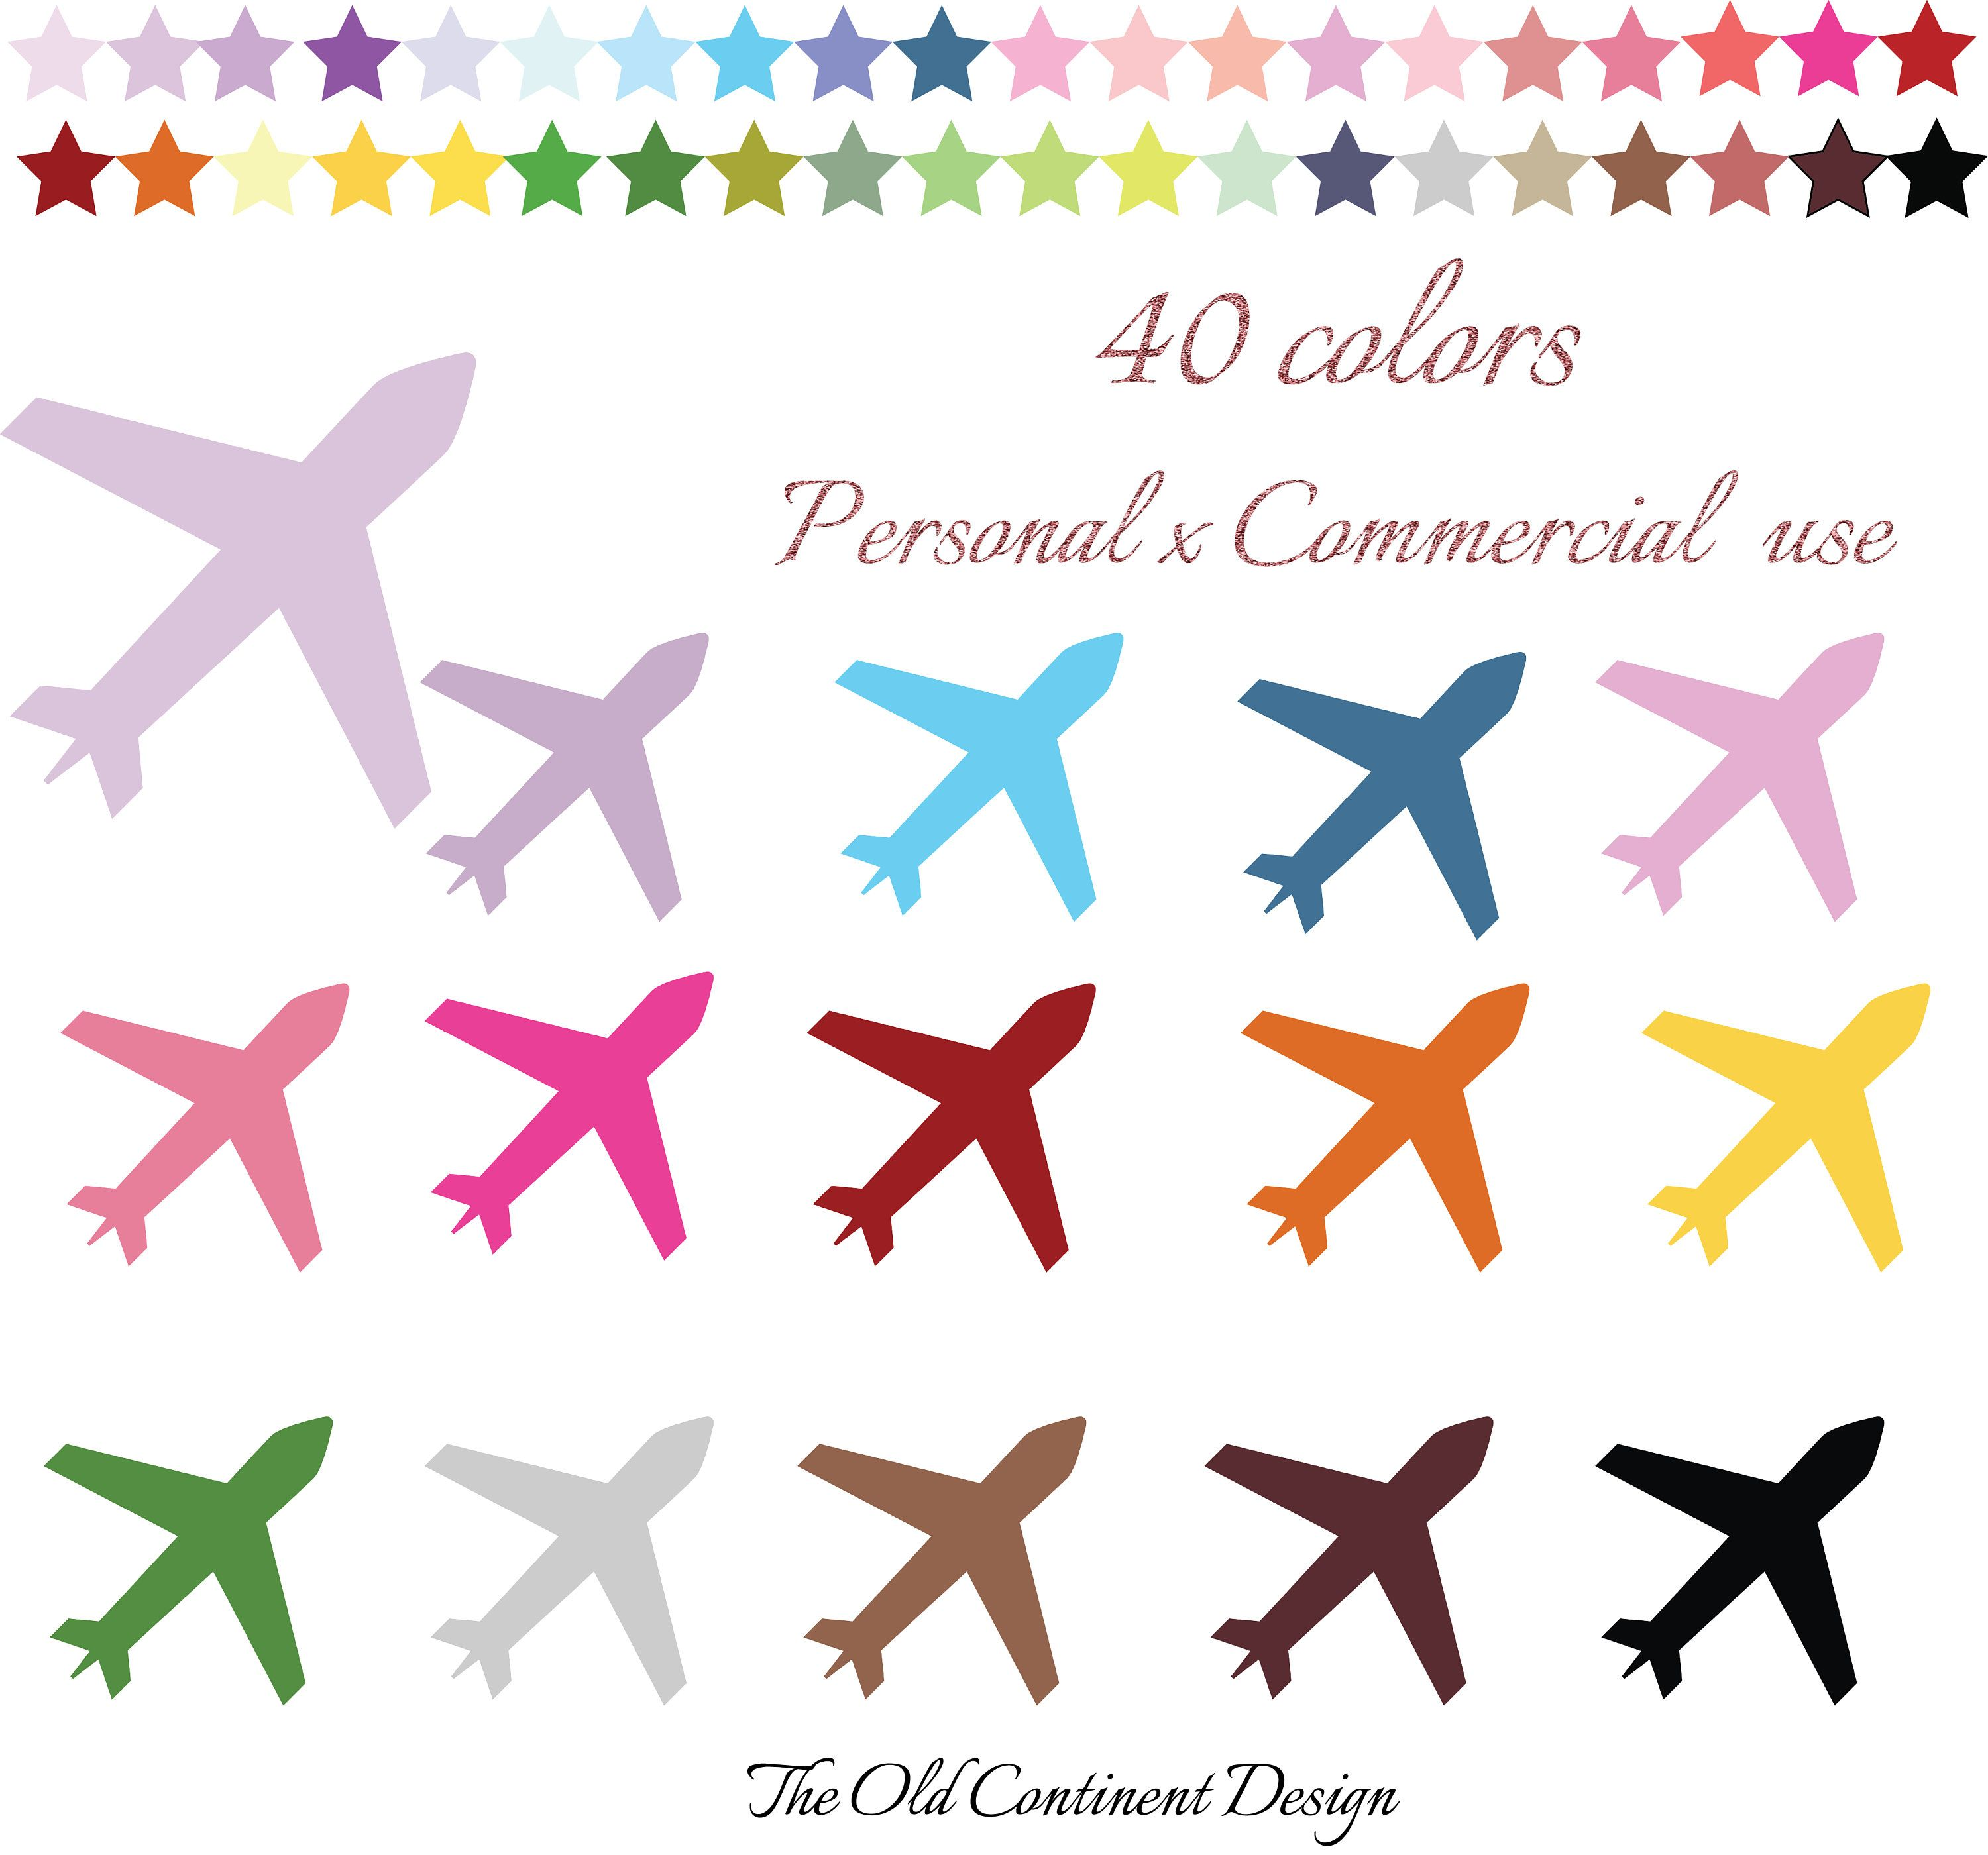 small resolution of airplane clipart plane clipart plane clip art airplane icon plane icon planes clipart aeroplane clipart aircraft cl 020